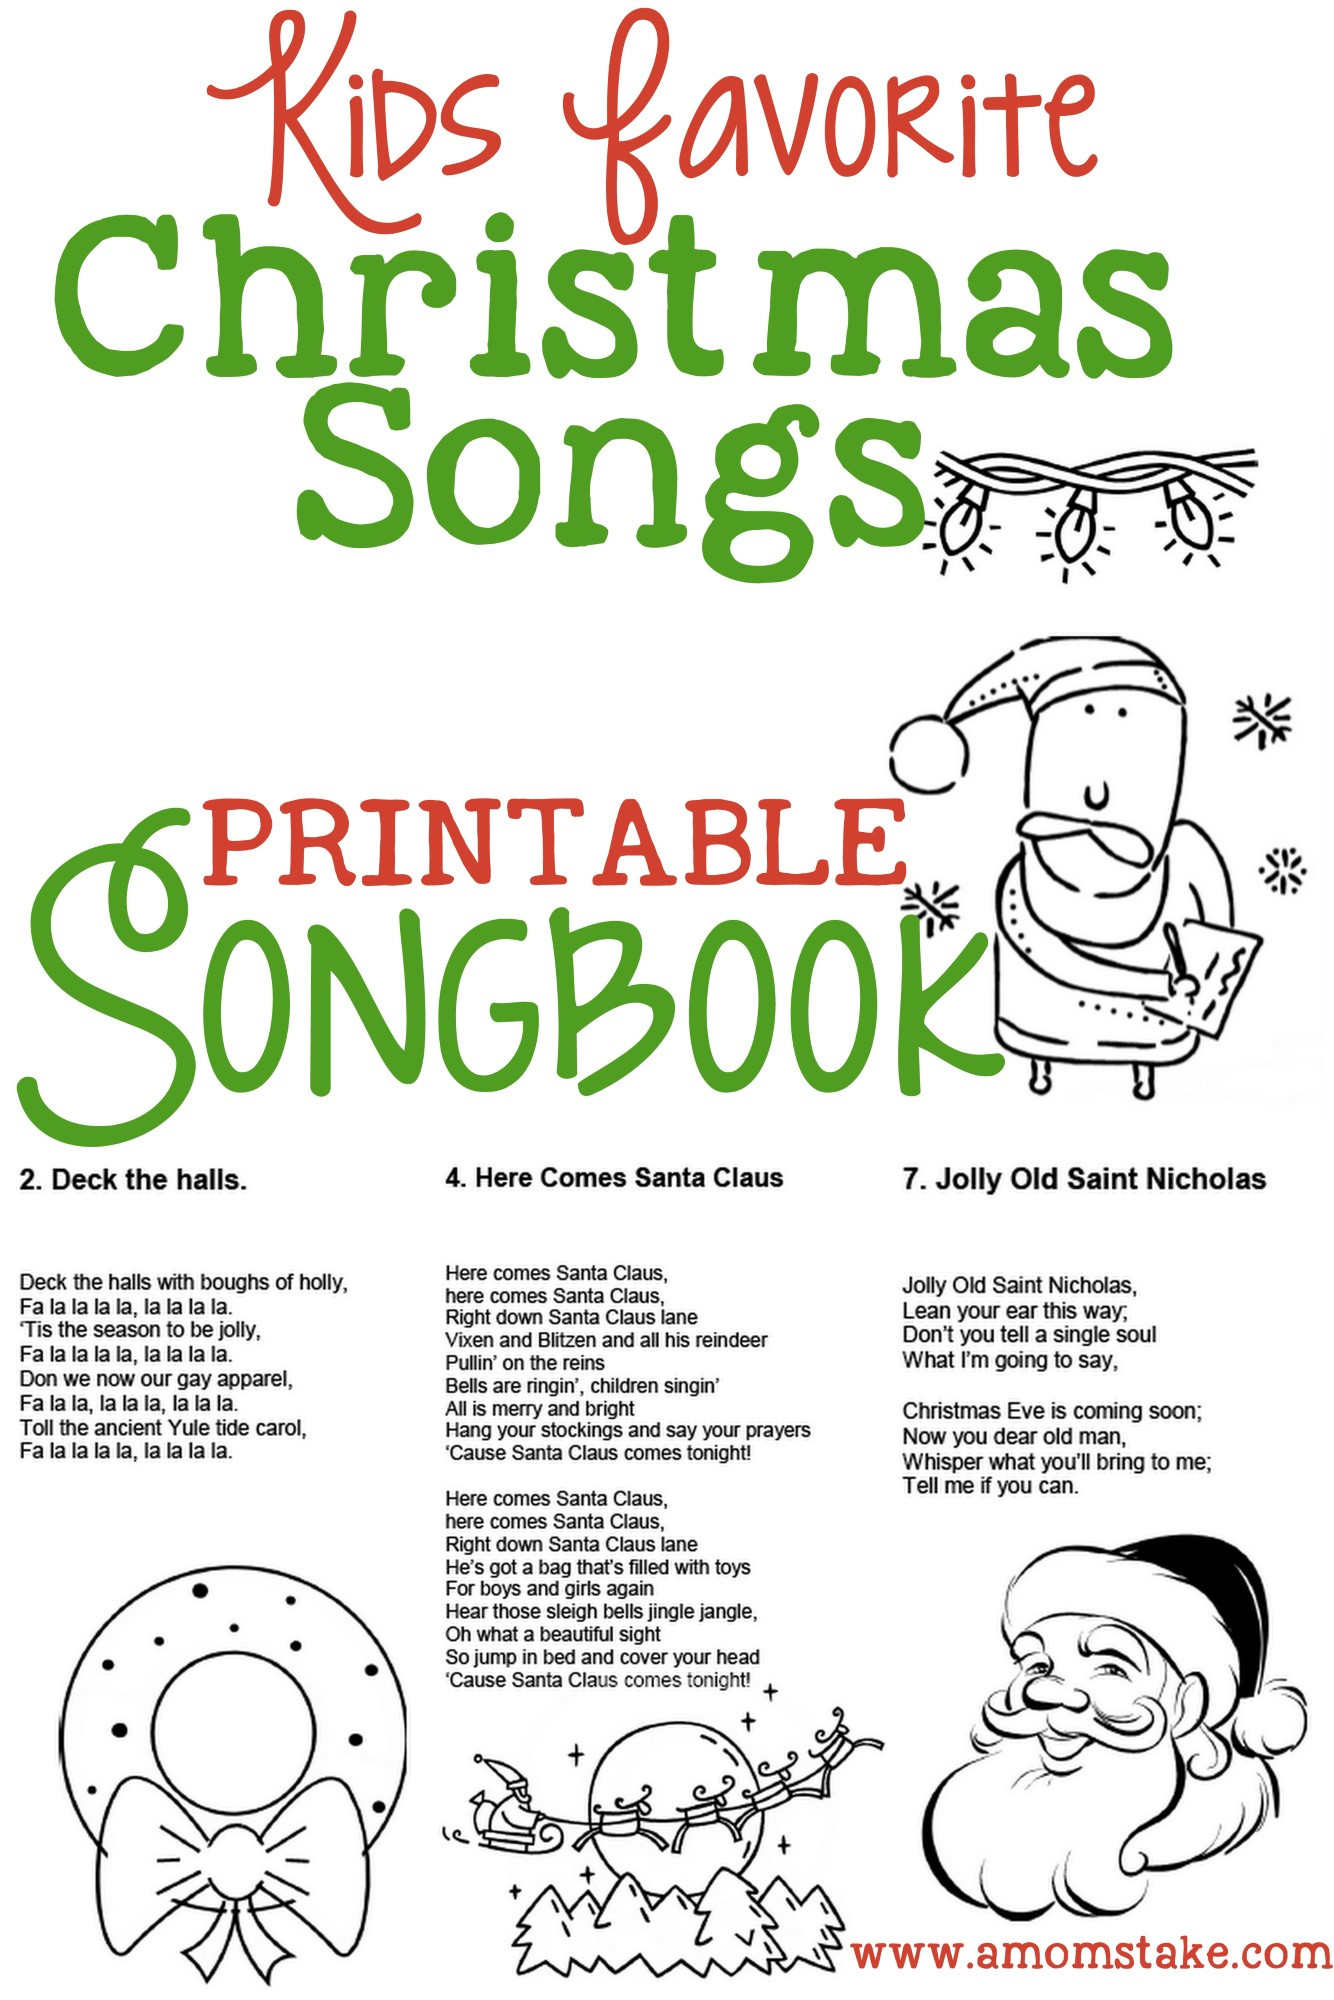 5 Images of Christmas Carol Songbook Printable